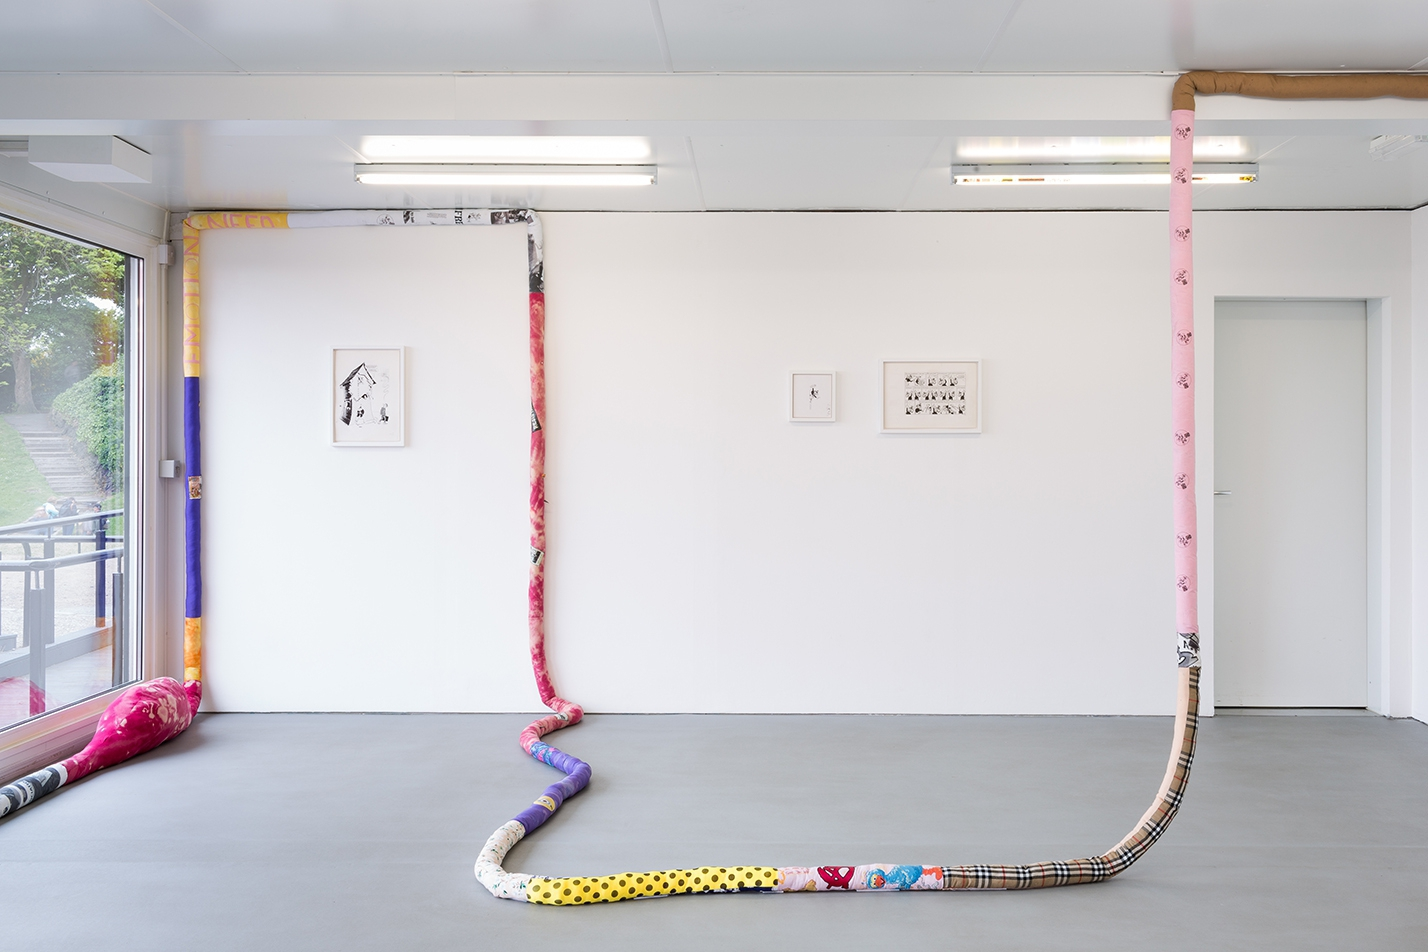 *Emotional Need*, an exhibition by Adam Lewis Jacob with works by Donald Rooum, installation view, 2017. Photo by Tom Nolan.